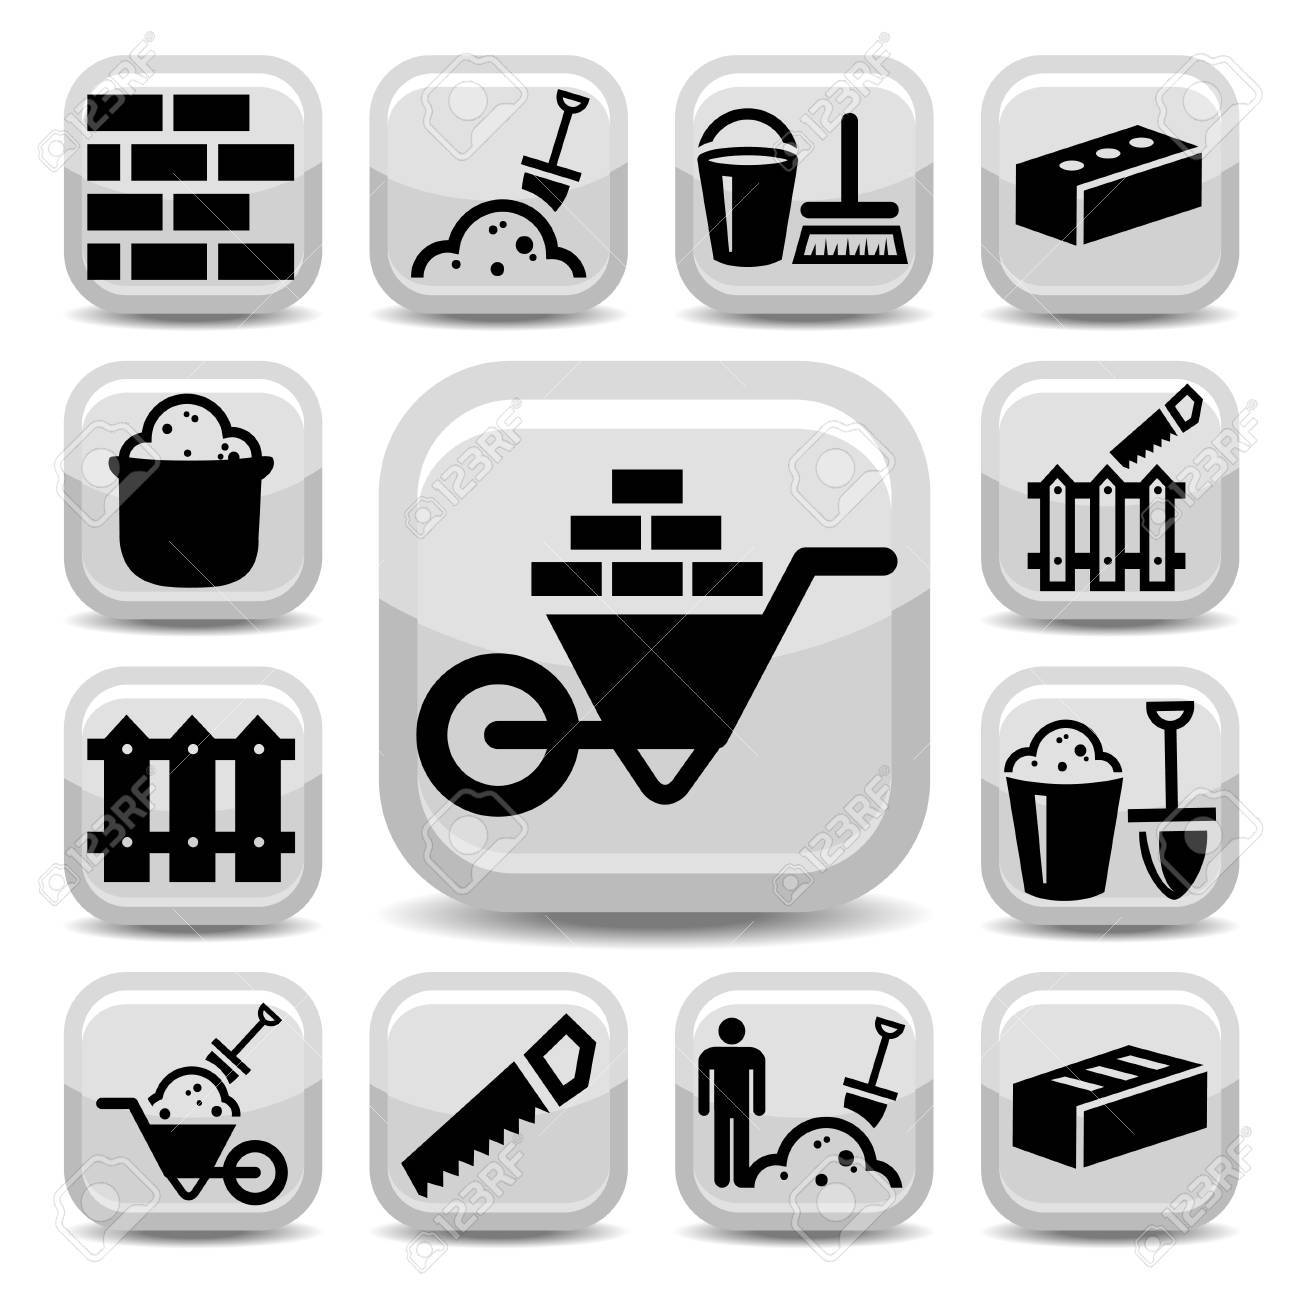 Elegant Bricklayer Icons Set Created For Mobile, Web And Applications Stock Vector - 20785359